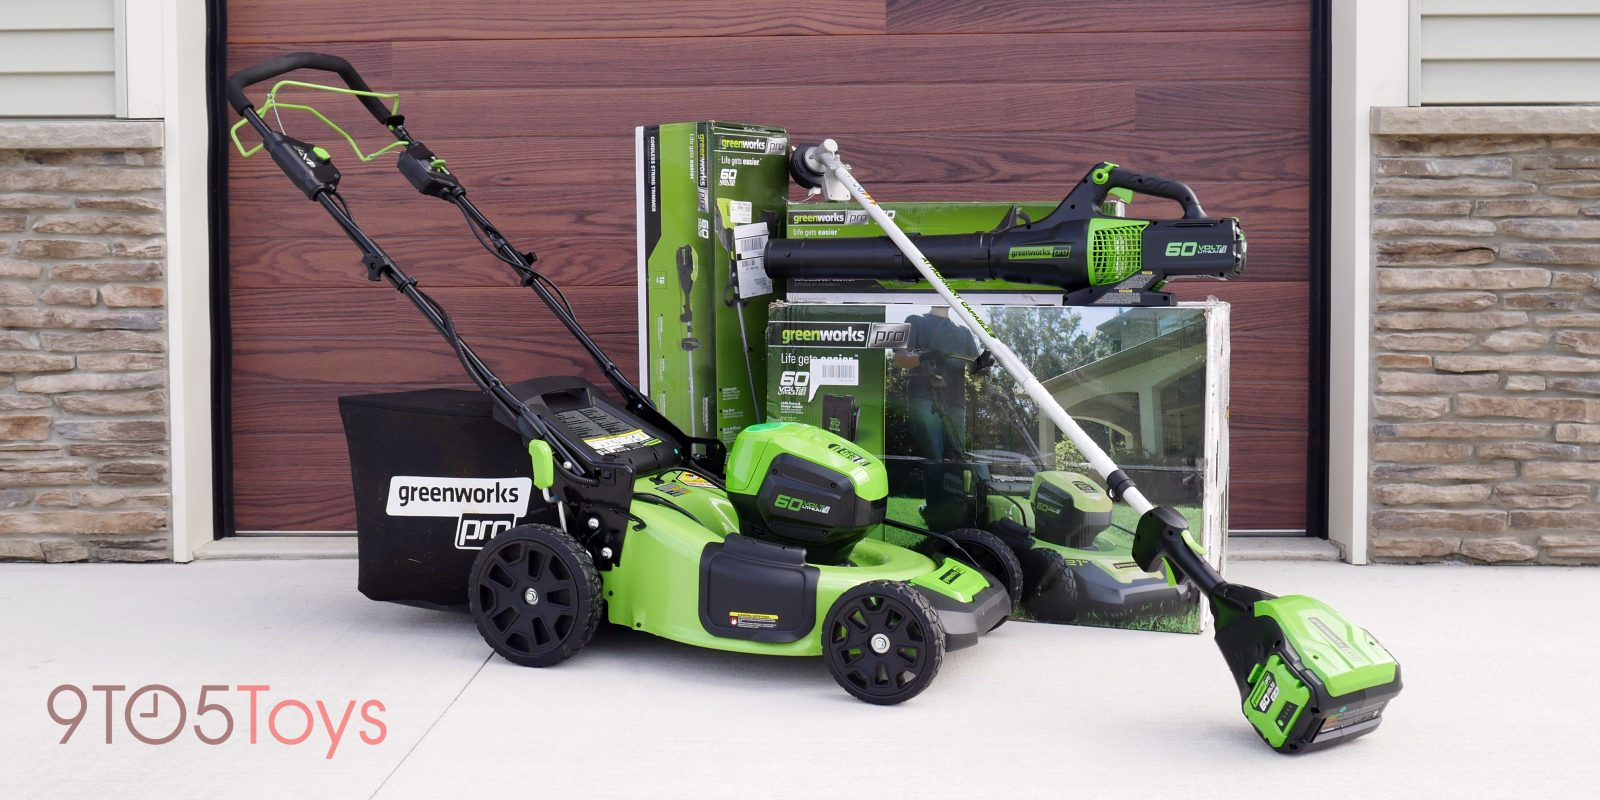 medium resolution of greenworks pro 60v review farewell gas outdoor tools i m all electric now